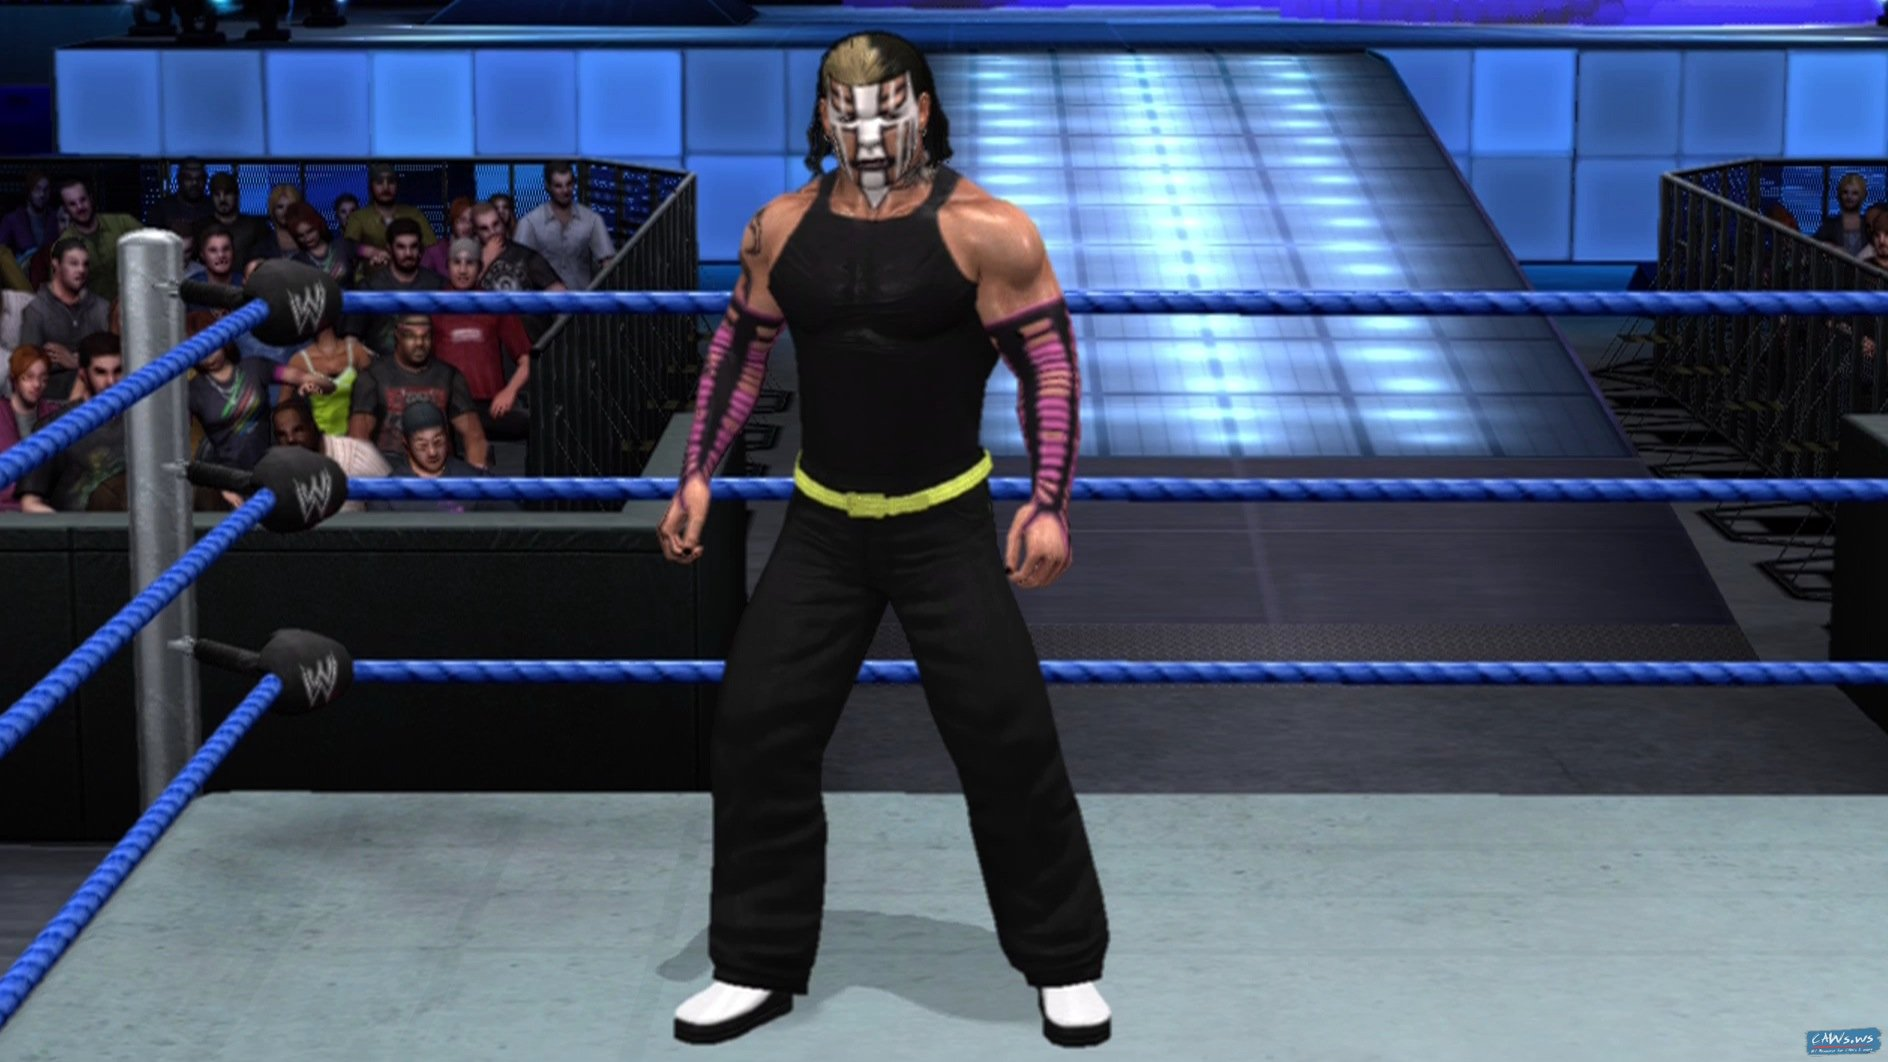 jeff4 - WWE 2k22 PPSSPP ISO file and data